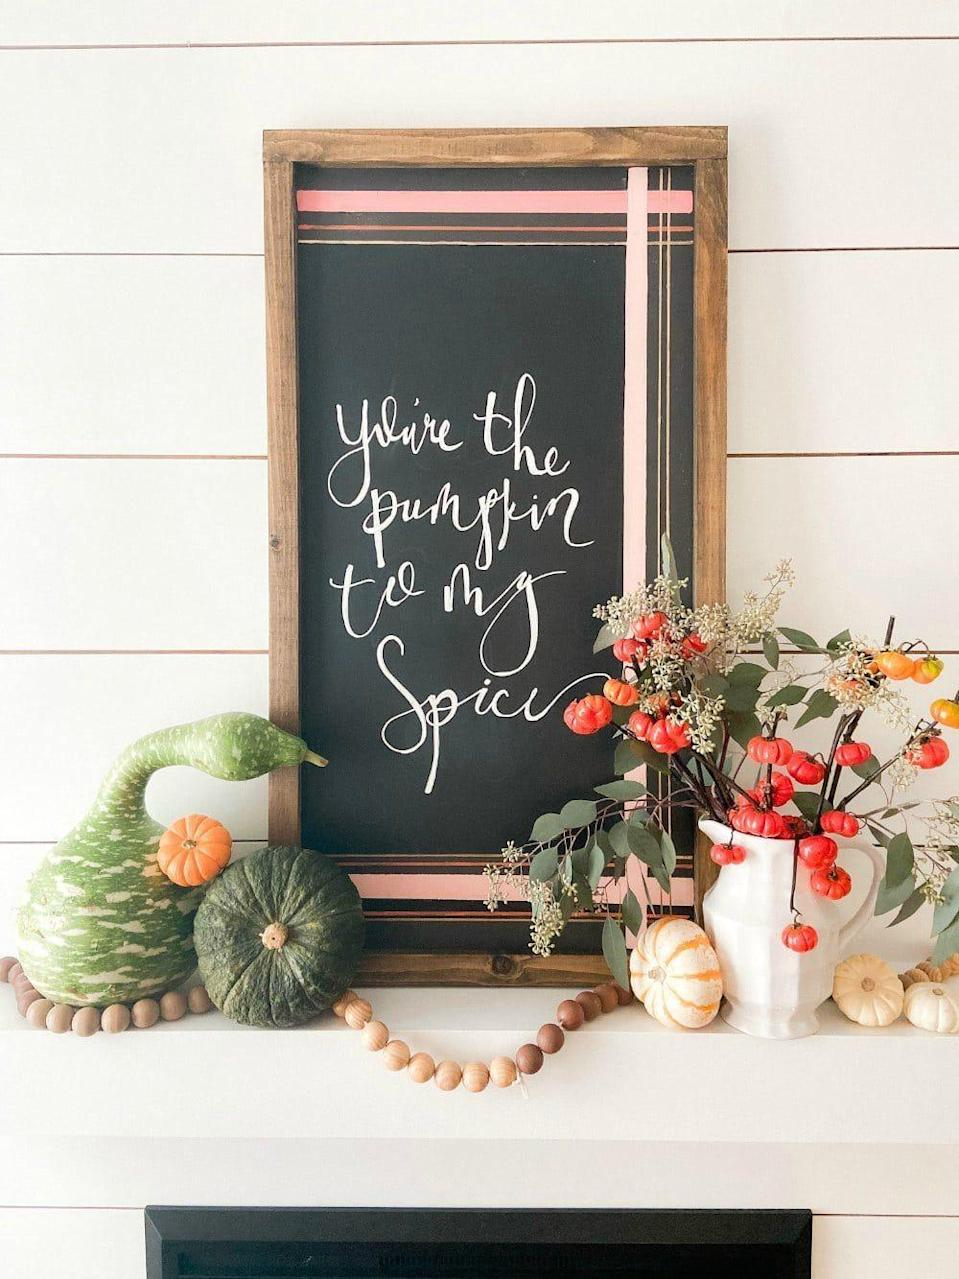 """<p>Can't pass up a PSL this time of year? Then you'll need to make this super-sweet """"You're the Pumpkin to My Spice"""" chalkboard sign for your mantel. </p><p><strong>Get the tutorial at <a href=""""https://tatertotsandjello.com/natural-fall-pumpkin-mantel-with-diy-chalkboard-art/"""" rel=""""nofollow noopener"""" target=""""_blank"""" data-ylk=""""slk:Tatertots and Jello"""" class=""""link rapid-noclick-resp"""">Tatertots and Jello</a>.</strong></p><p><a class=""""link rapid-noclick-resp"""" href=""""https://go.redirectingat.com?id=74968X1596630&url=https%3A%2F%2Fwww.walmart.com%2Fsearch%2F%3Fquery%3Dchalkboard%2Bspray&sref=https%3A%2F%2Fwww.thepioneerwoman.com%2Fhome-lifestyle%2Fcrafts-diy%2Fg36891743%2Ffall-mantel-decorations%2F"""" rel=""""nofollow noopener"""" target=""""_blank"""" data-ylk=""""slk:SHOP CHALKBOARD SPRAY PAINT"""">SHOP CHALKBOARD SPRAY PAINT</a></p>"""